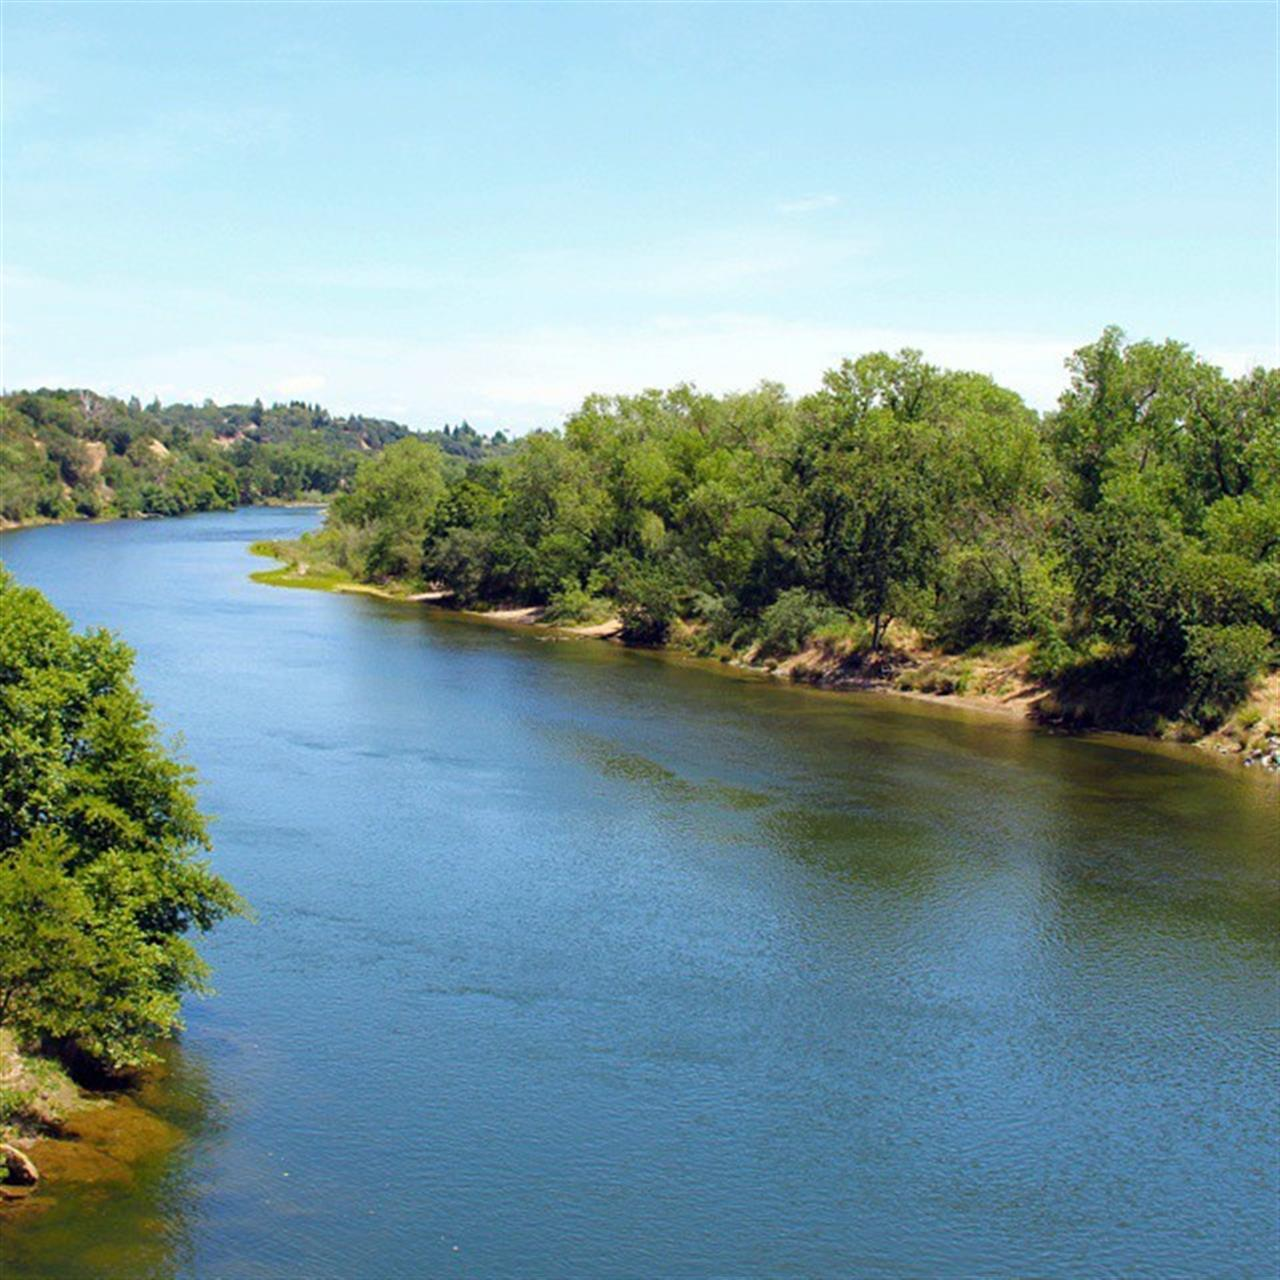 Amazing view of the American River from the Fair Oaks Bridge. #leadingrelocal #lyonrealestate #americanriver #fairoaks #fairoaksbridge